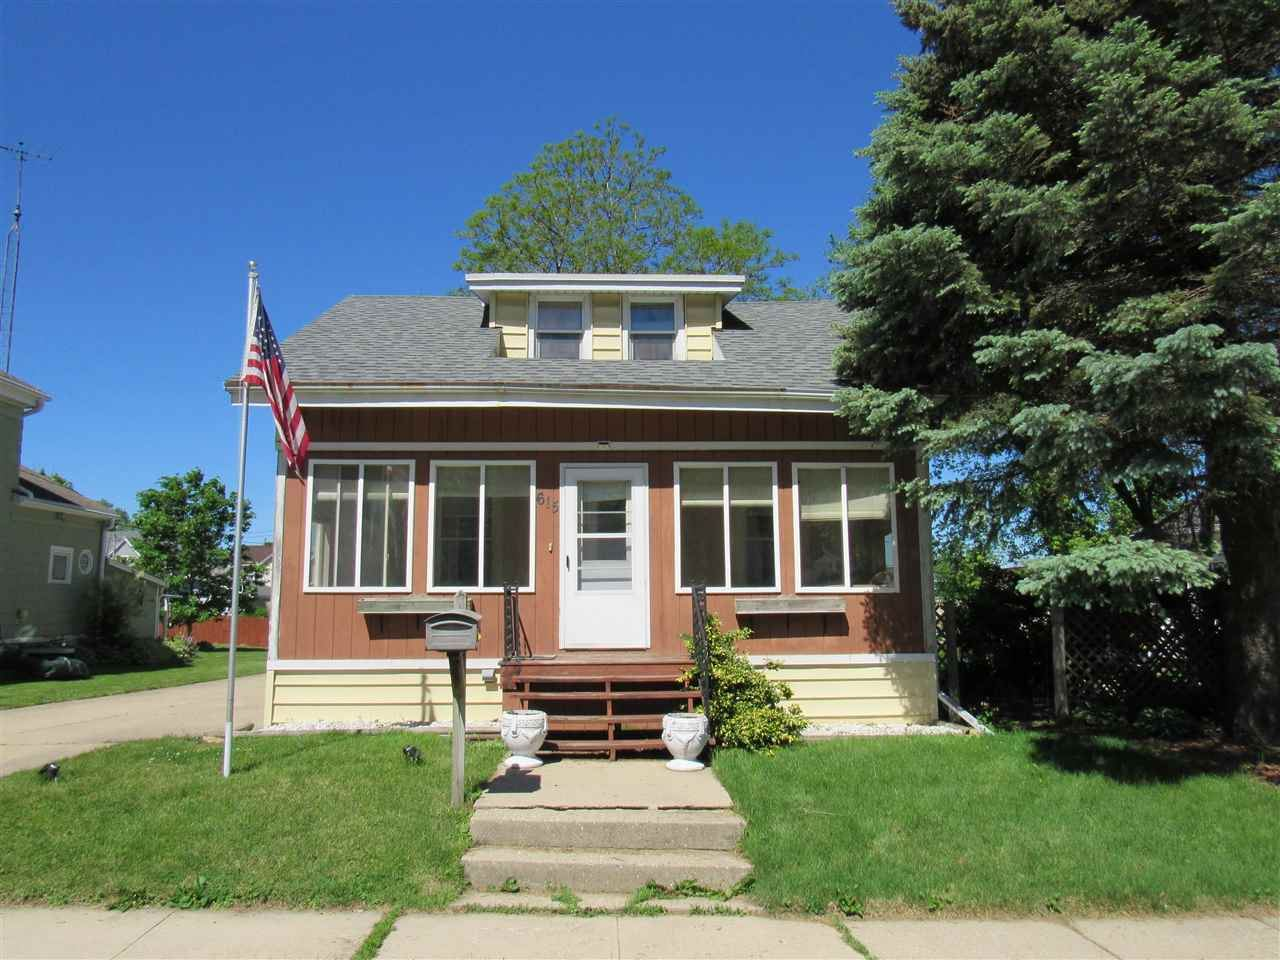 615 20th Ave, Monroe, WI 53566 - #: 1910236